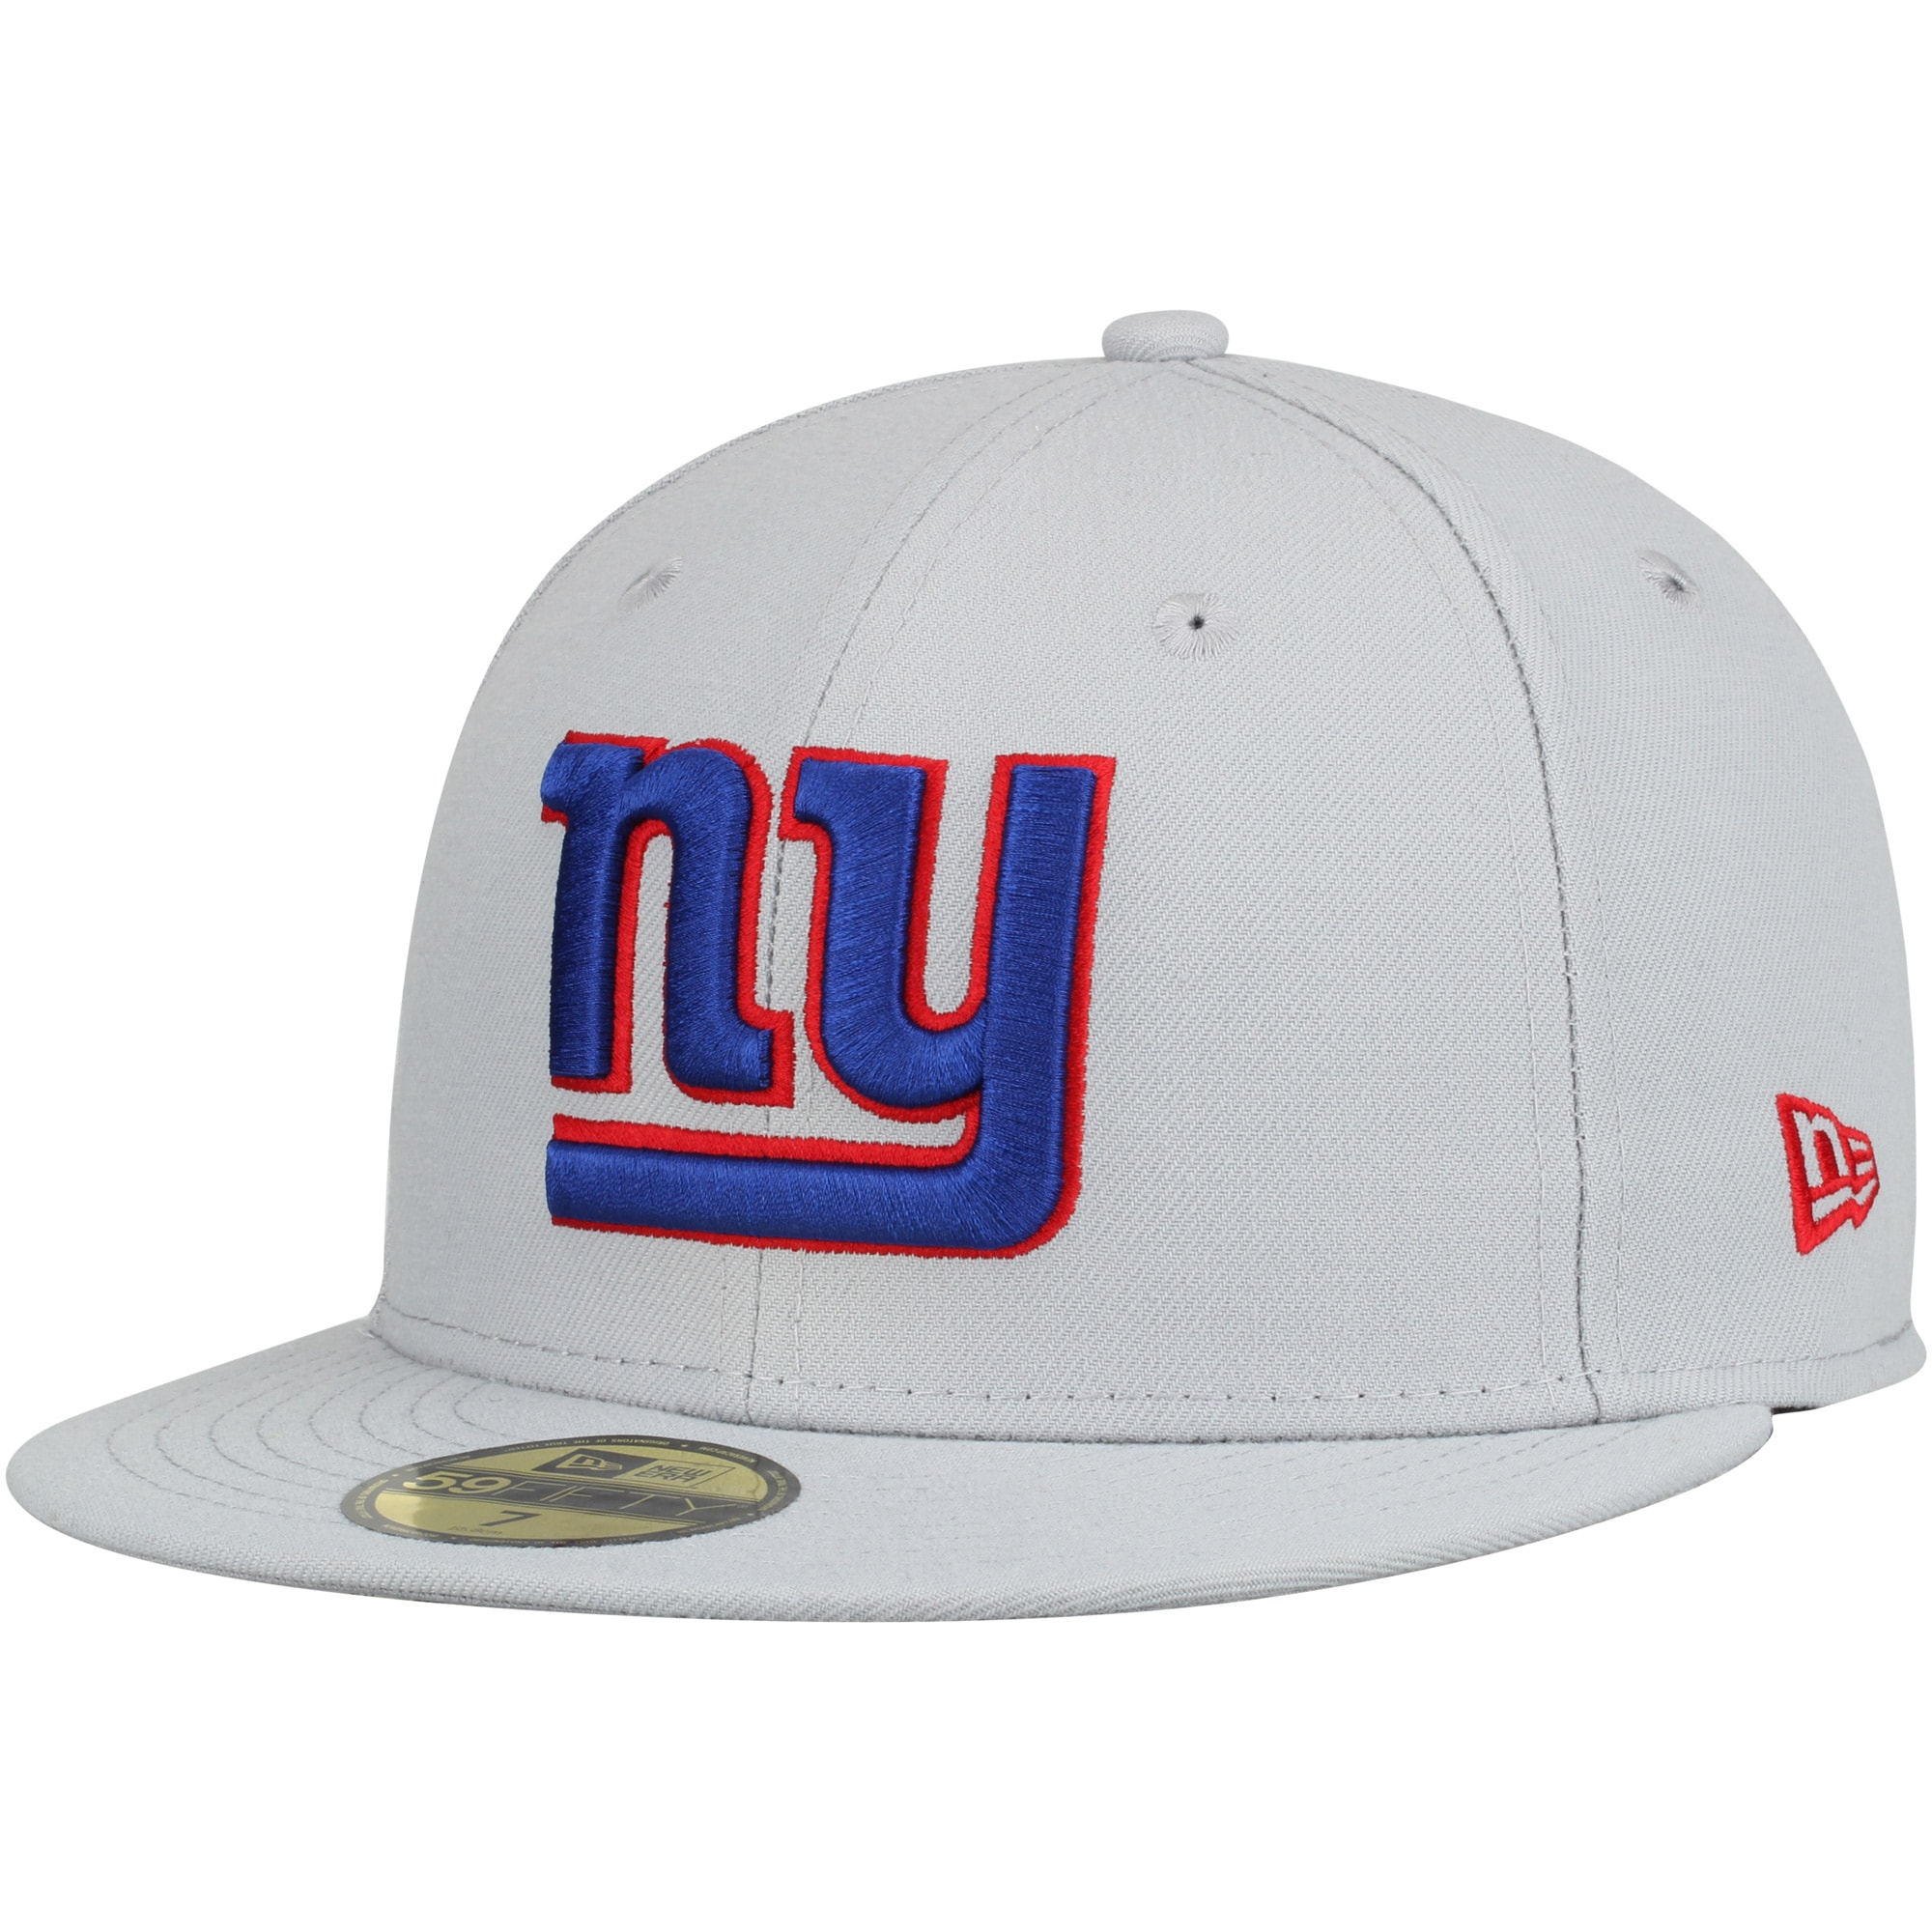 New York Giants New Era Omaha 59FIFTY Fitted Hat - Gray